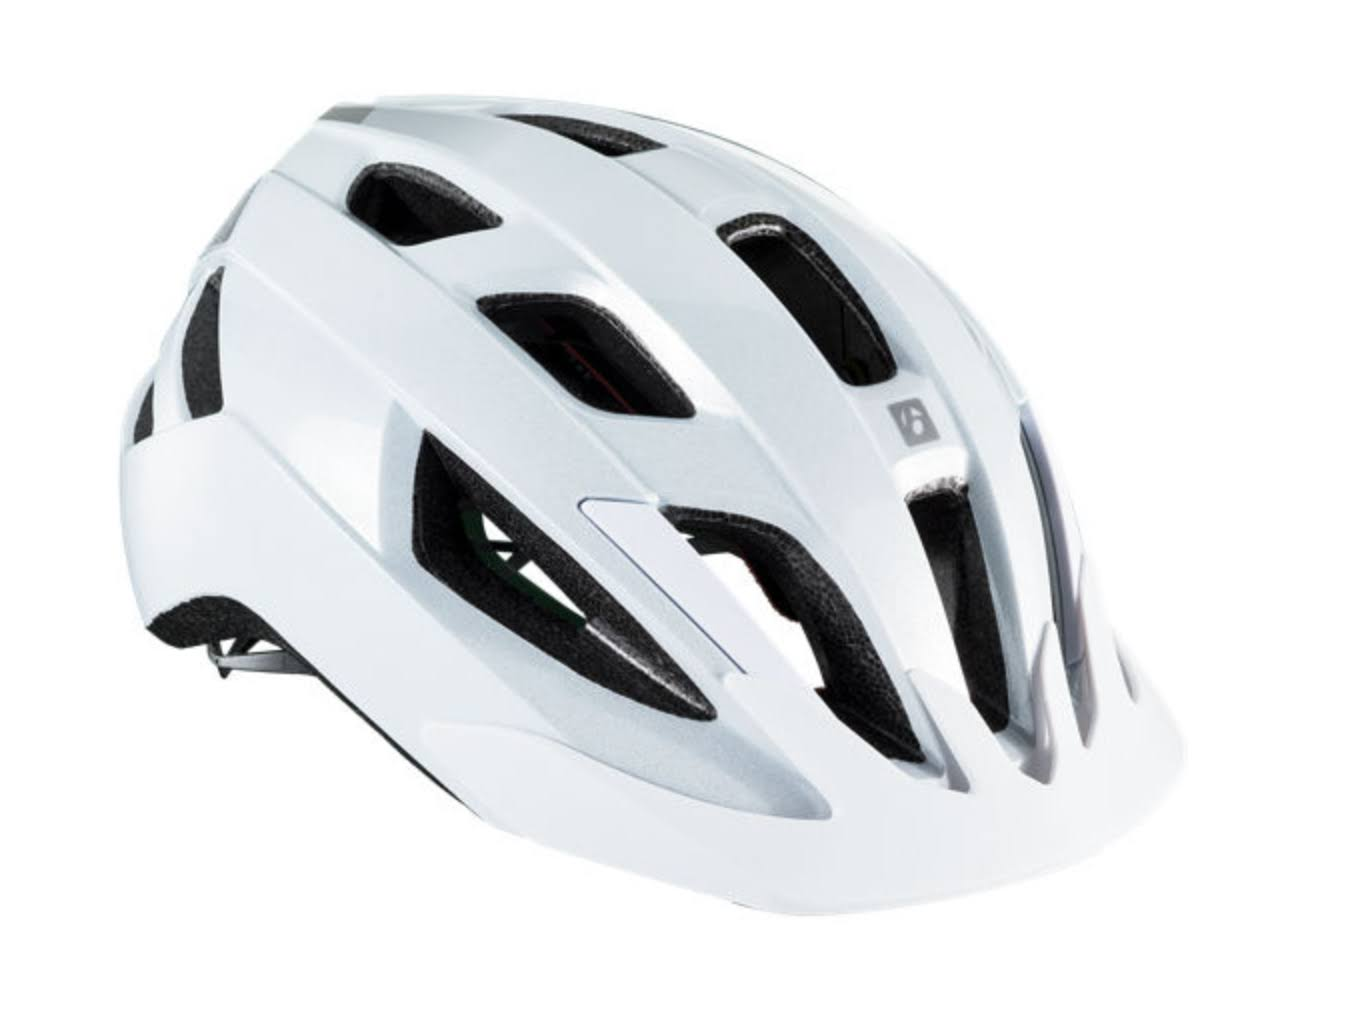 Bontrager Solstice MIPS Bike Helmet - White - Medium/Large